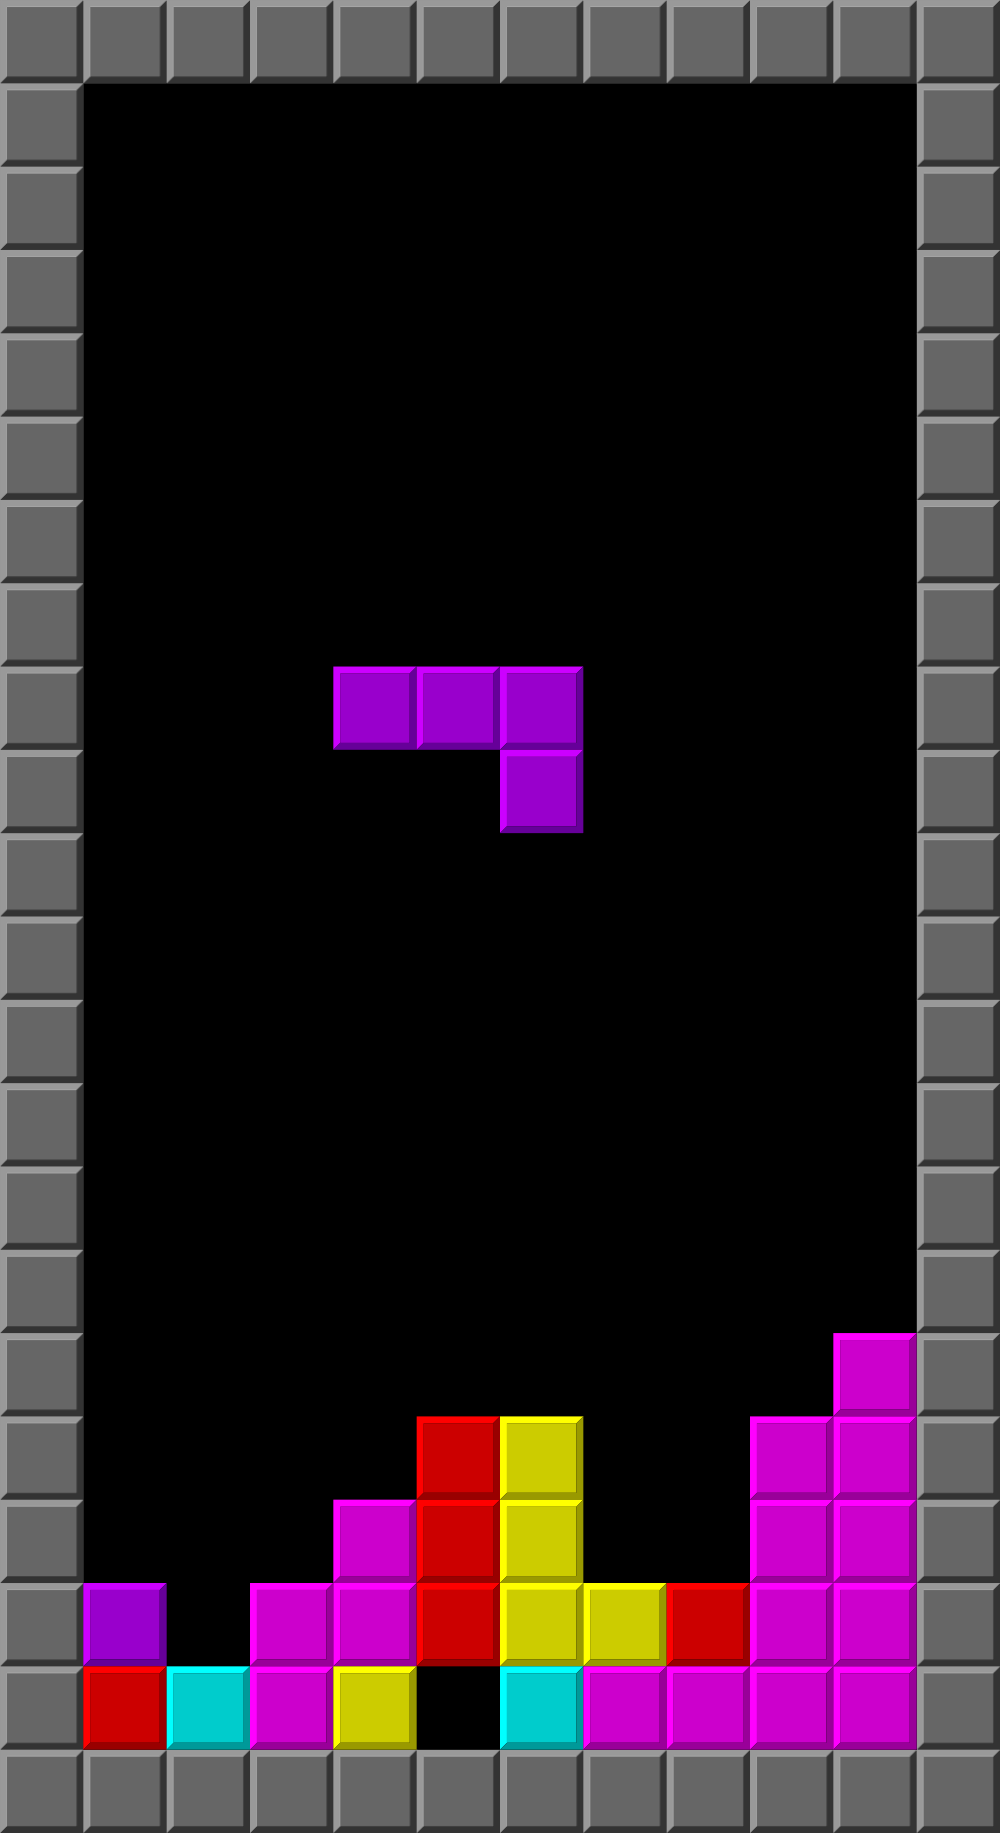 A screenshot of the Tetris videogame.